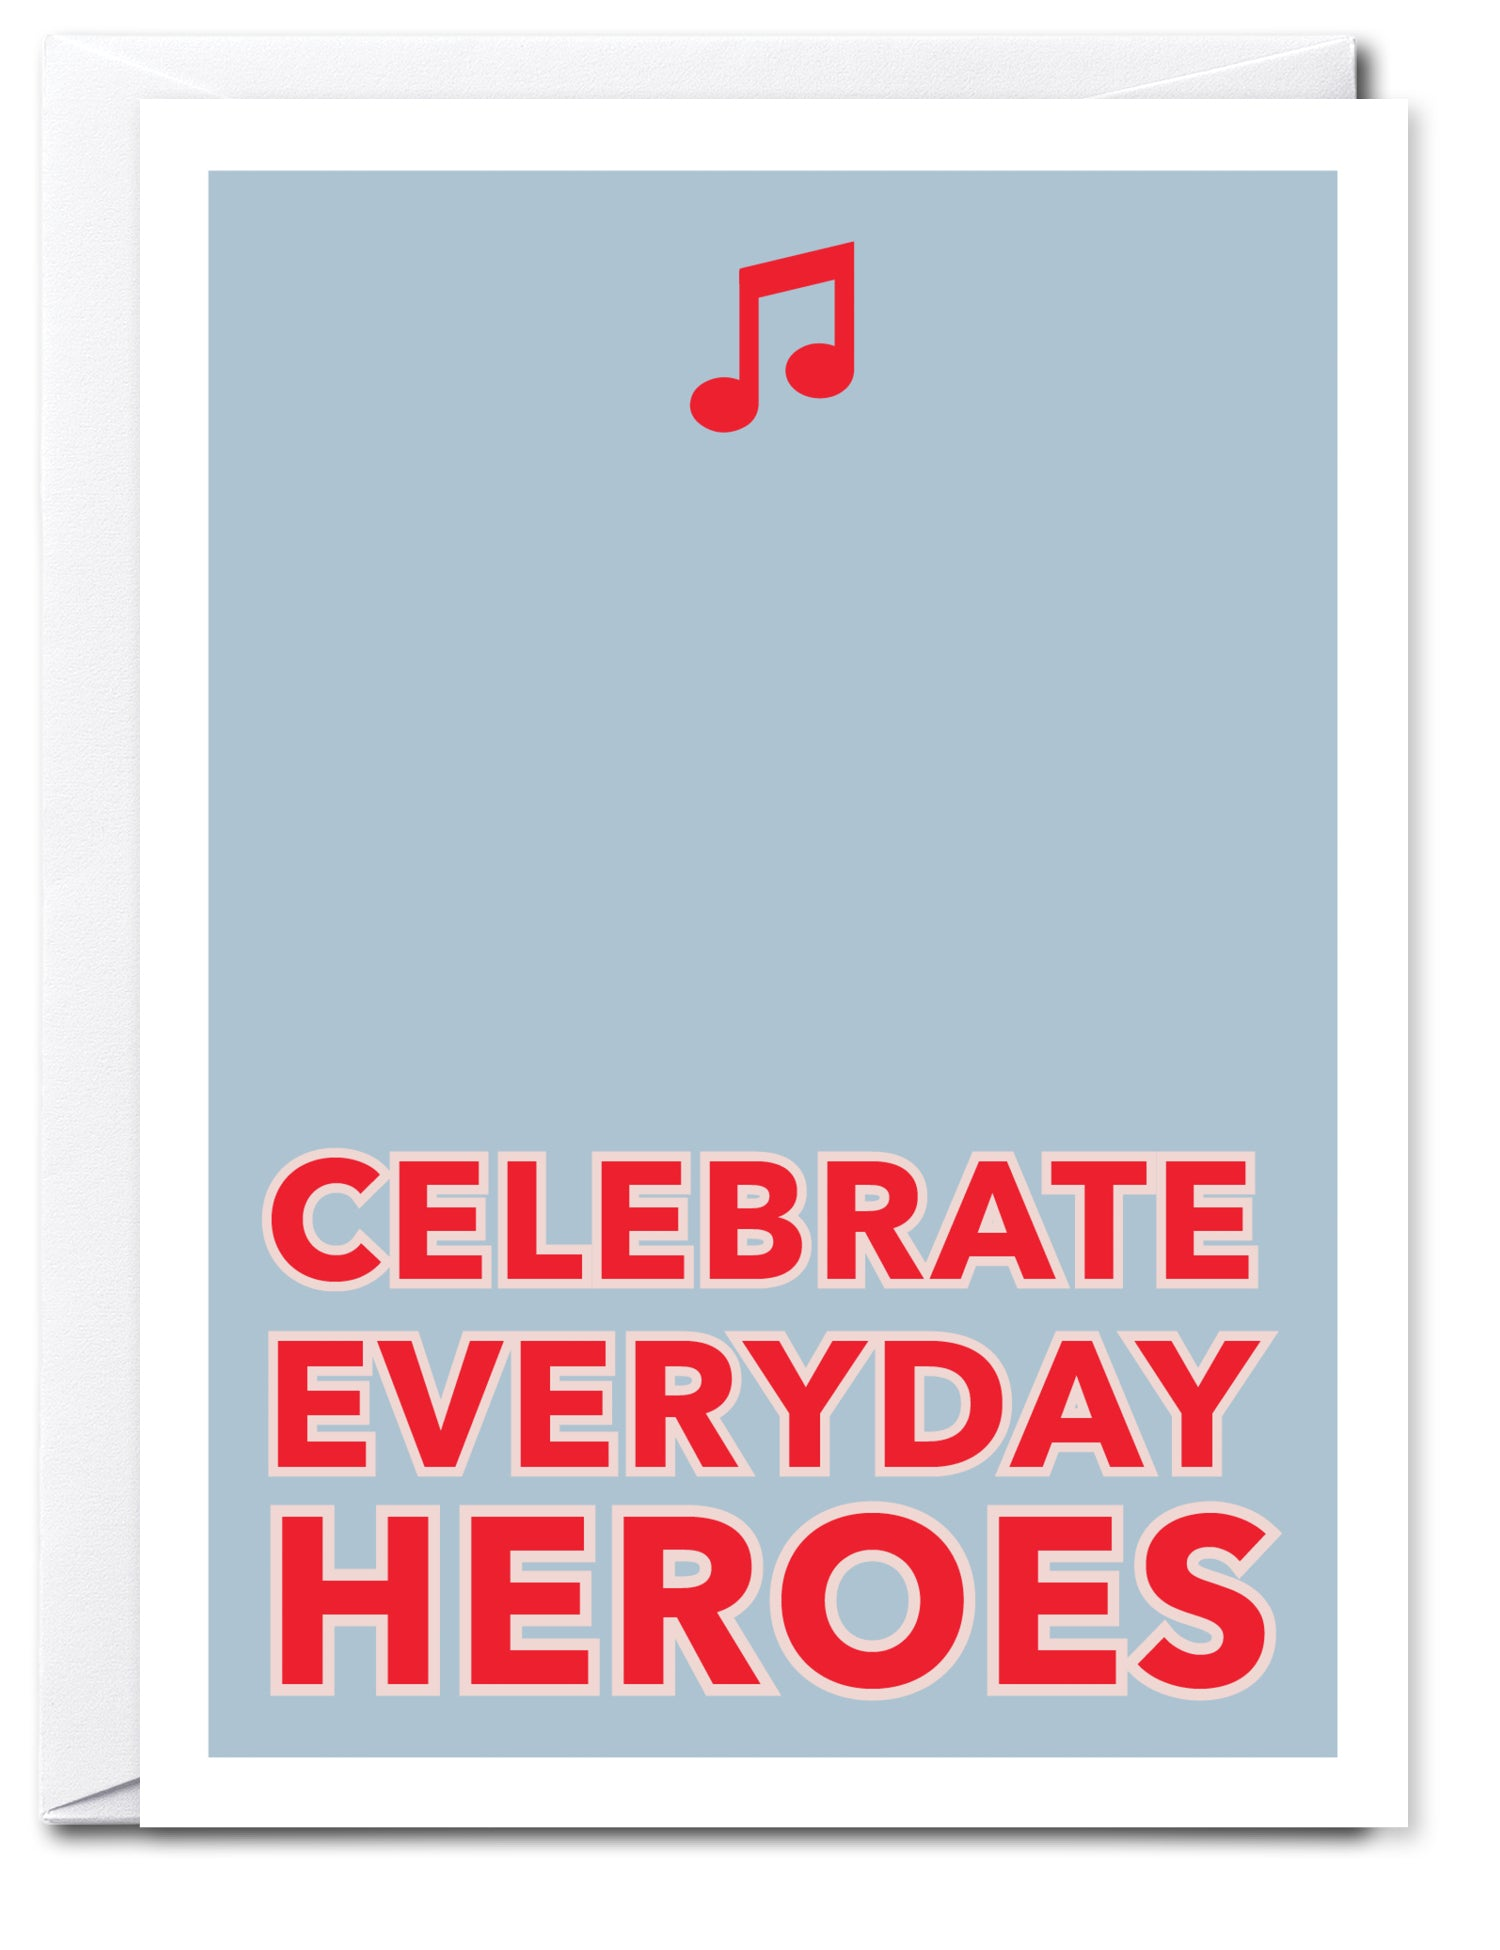 CELEBRATE EVERYDAY HEROES